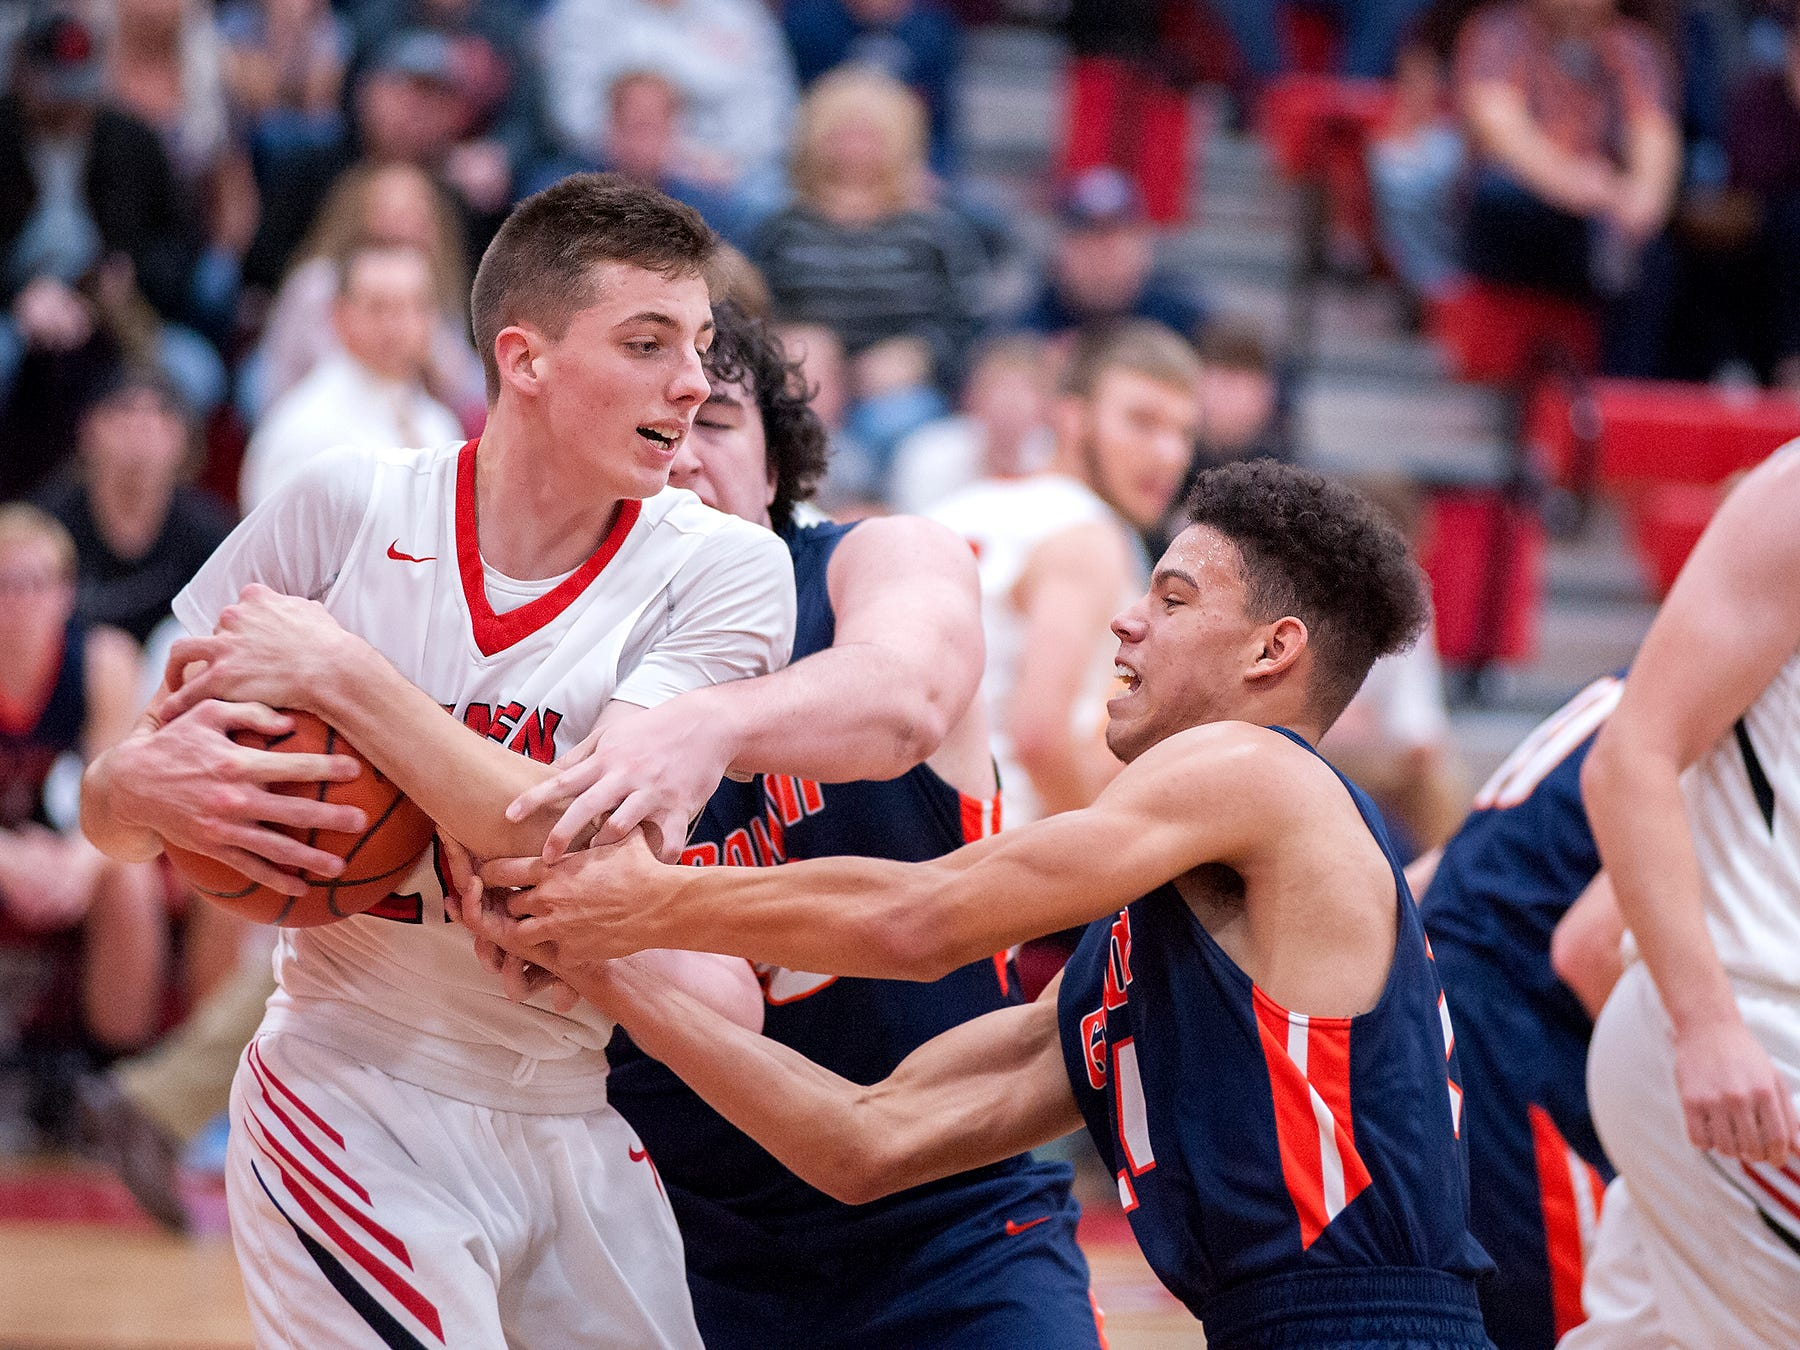 Bucyrus' Lucas Kozinski keeps control of the ball from Galion's Tristan Williams and Hanif Donaldson.